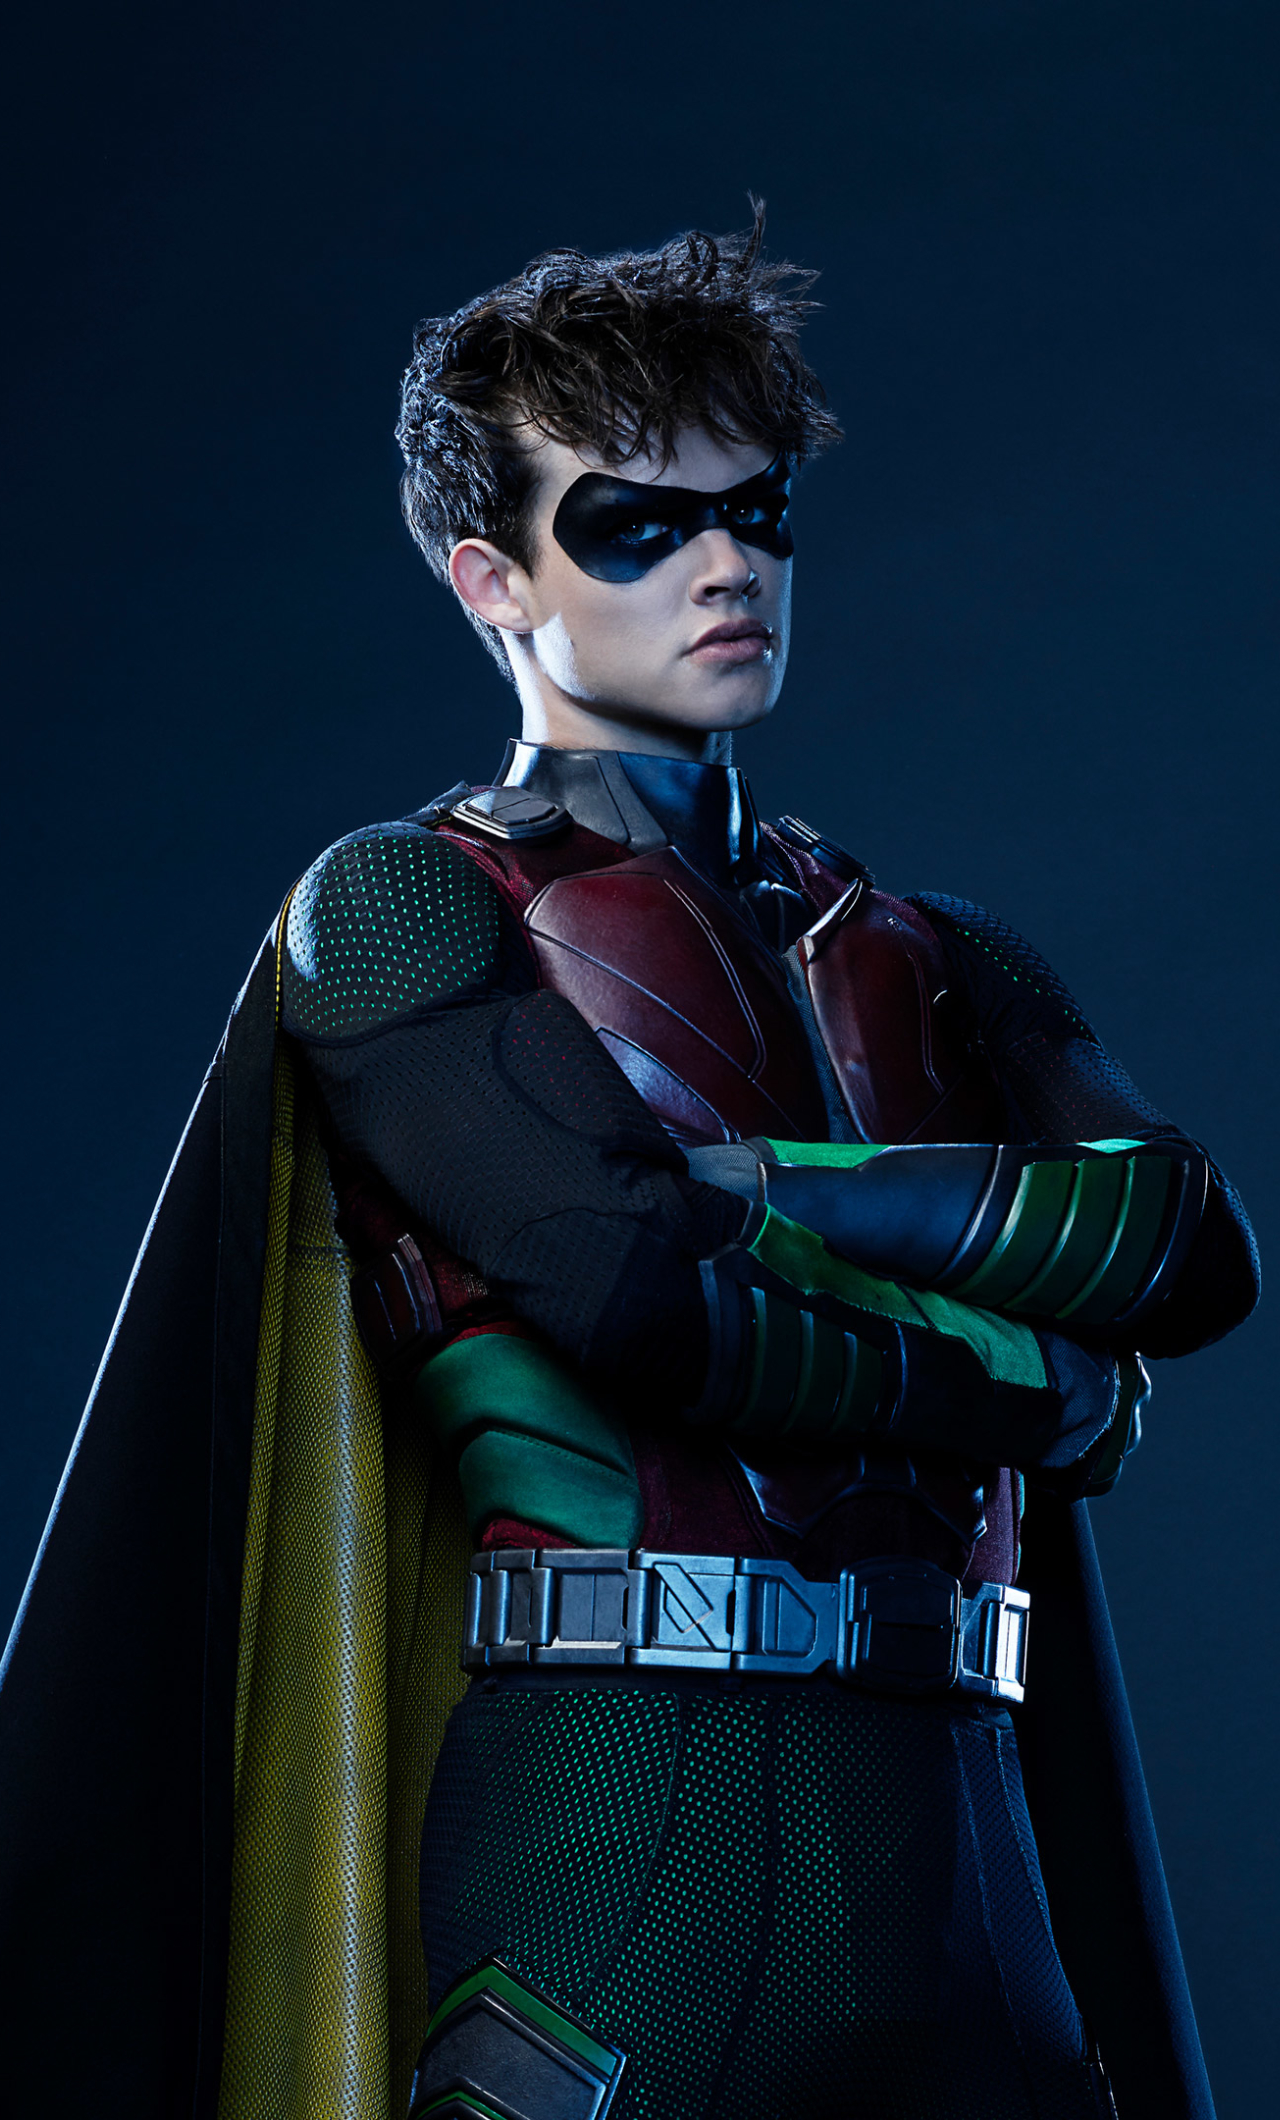 1280x2120 Curran Walters As Robin Iphone 6 Plus Wallpaper Hd Tv Series 4k Wallpapers Images Photos And Background There are new members of the team (sort of) in rose (chelsea zhang) and conner a.k.a superboy (joshua orpin), but we don't get to see them gel with the team either. 1280x2120 curran walters as robin